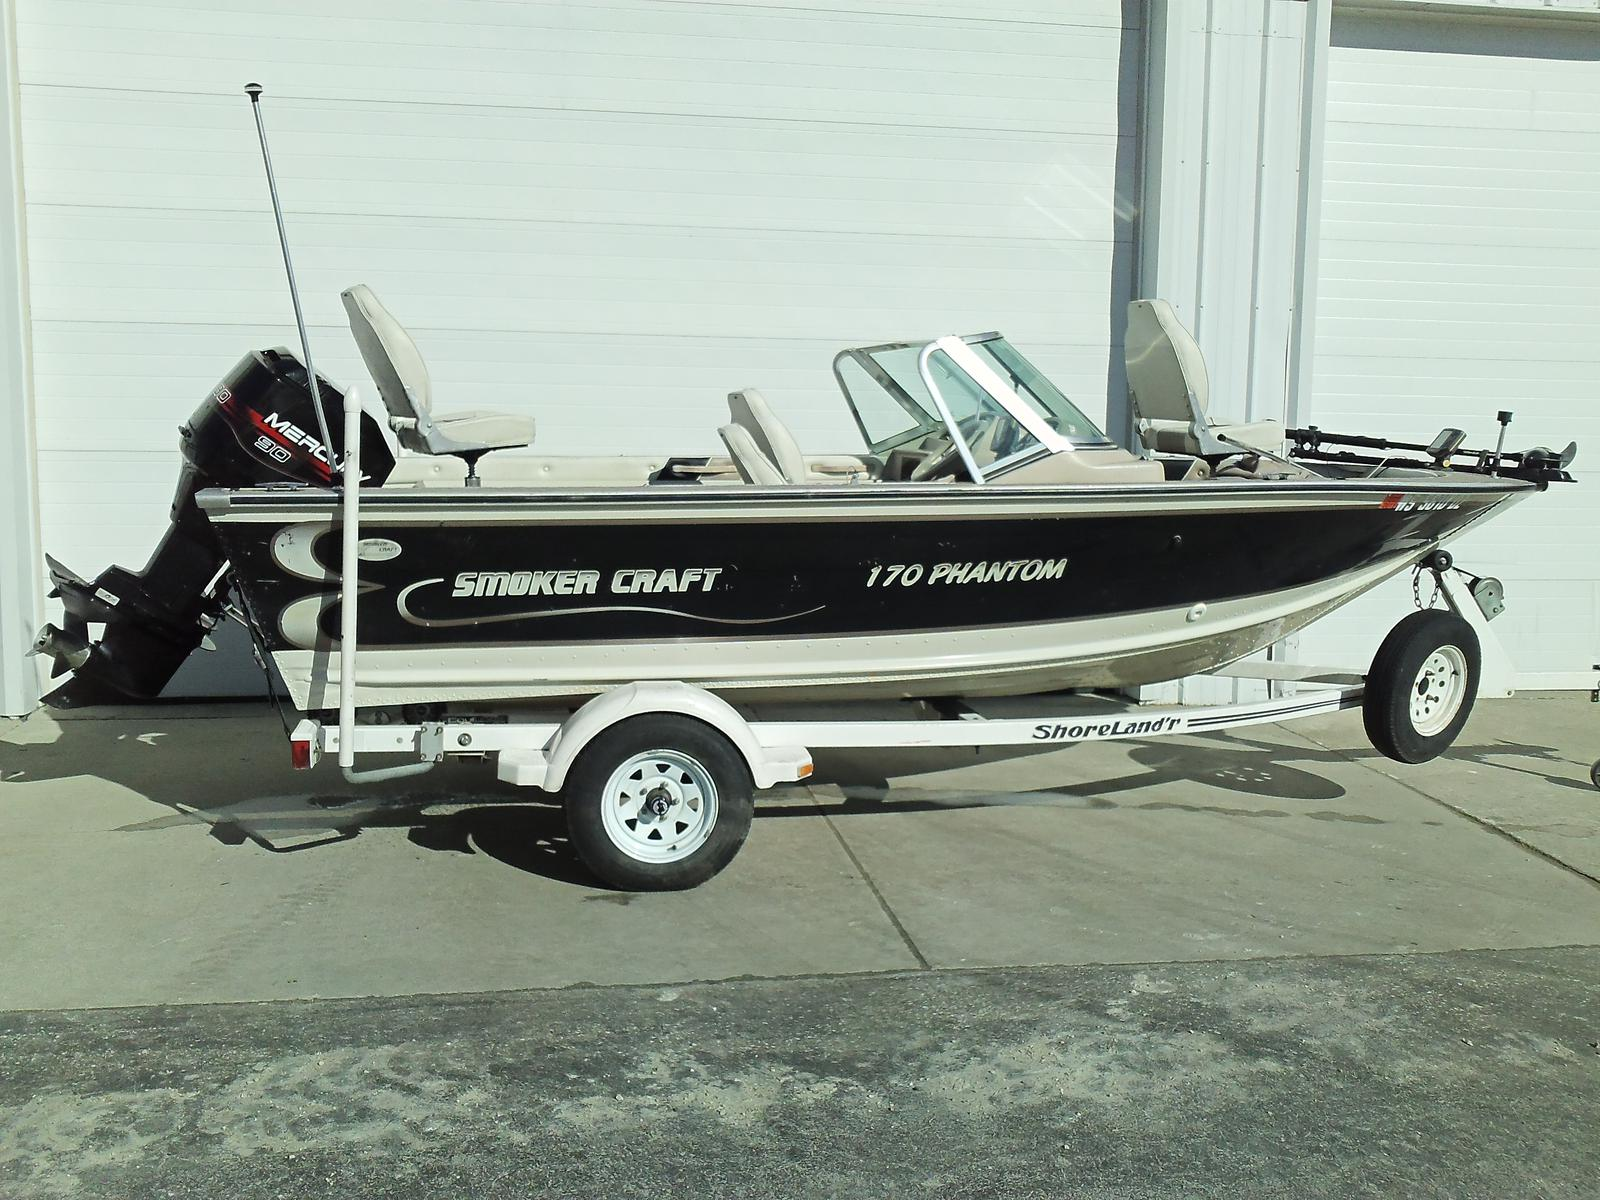 Smoker craft 162 pro angler xl video boat review for Let s go fishing xl